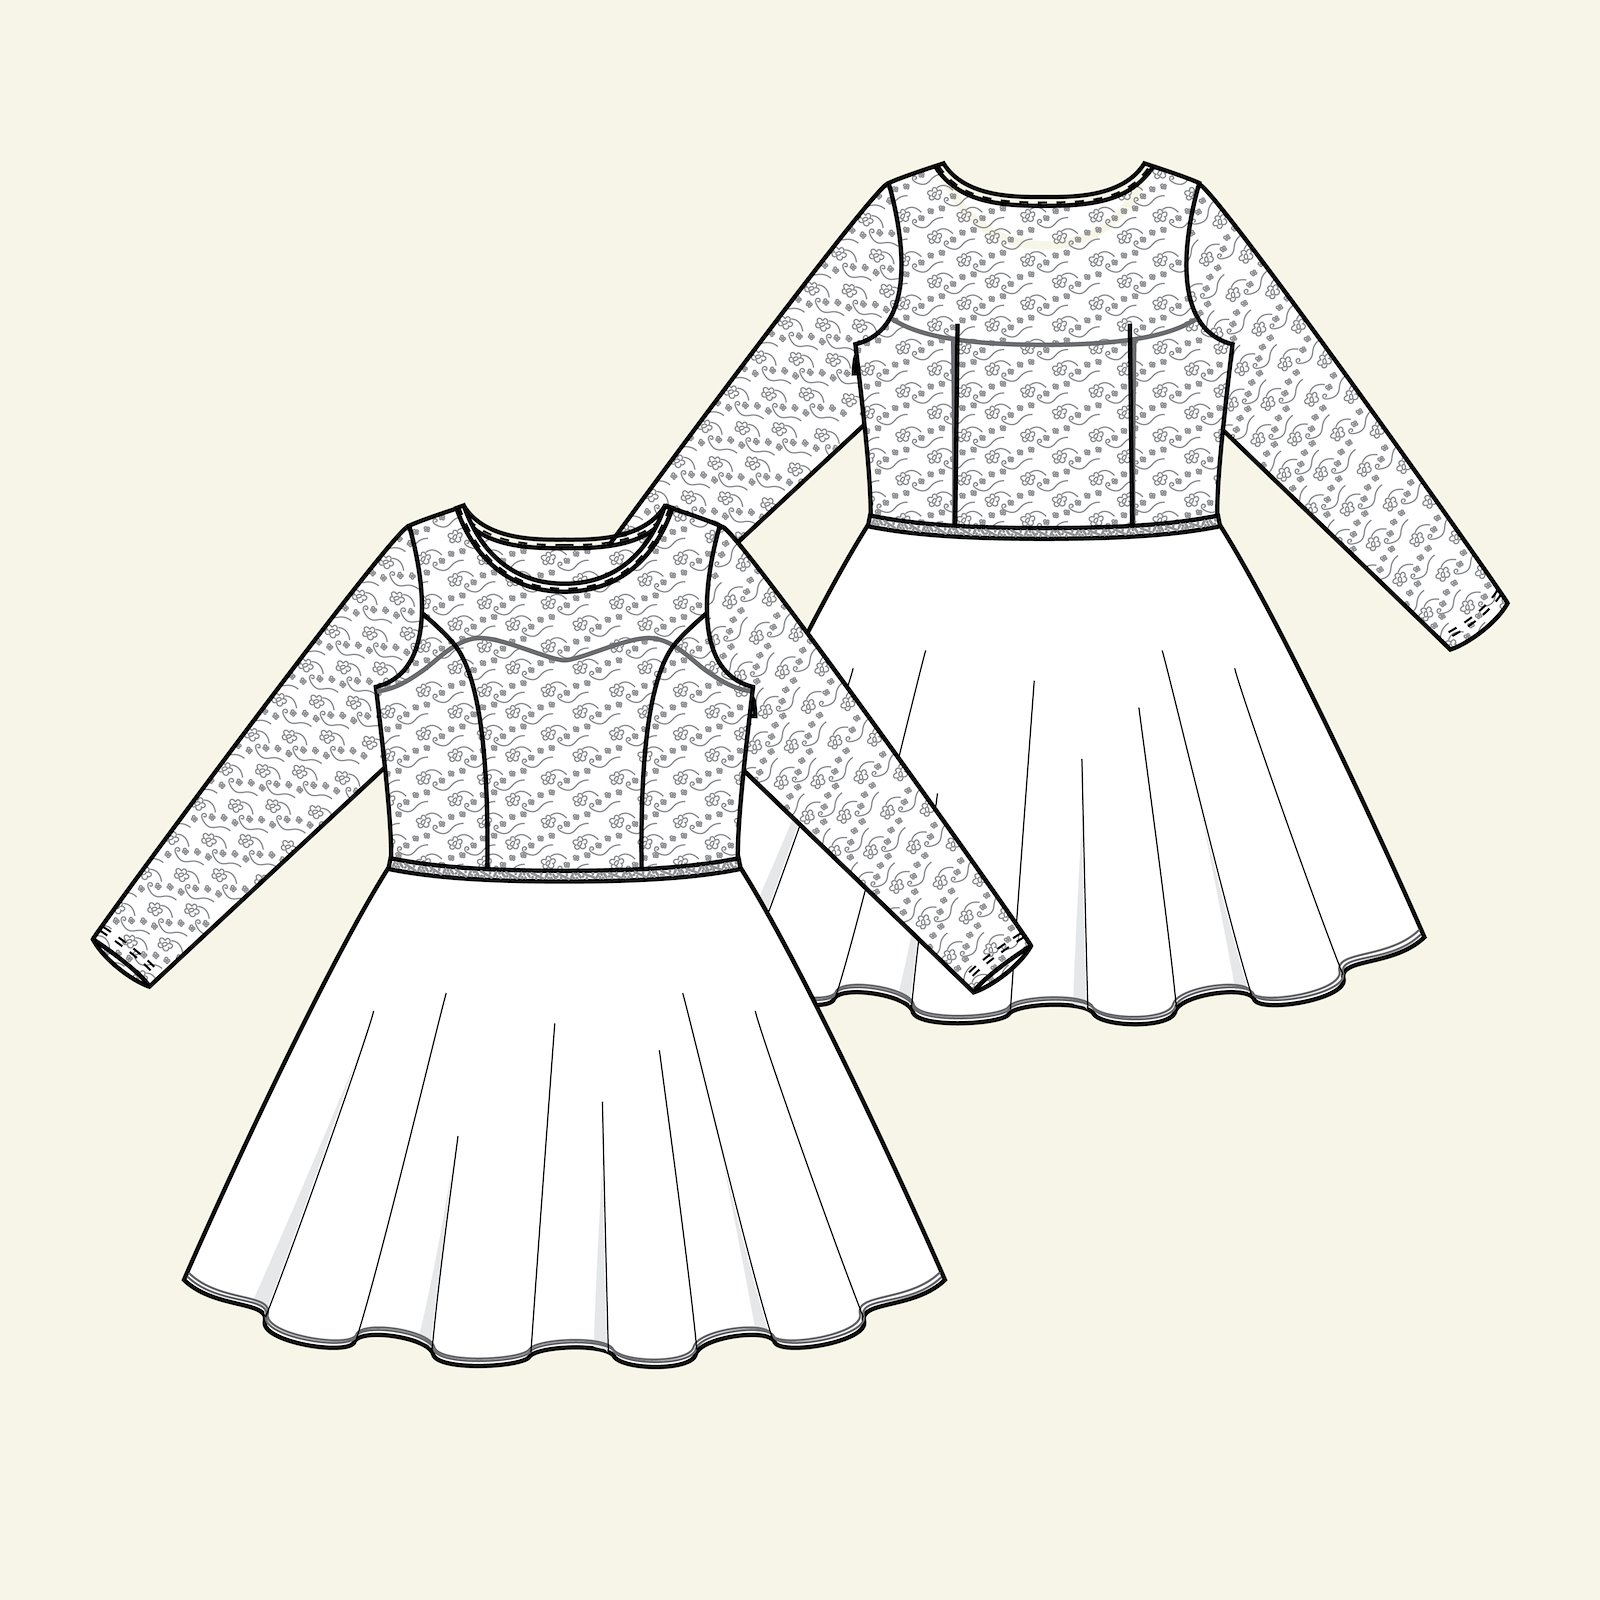 Confirmation dress, 42/14 p23158_pack